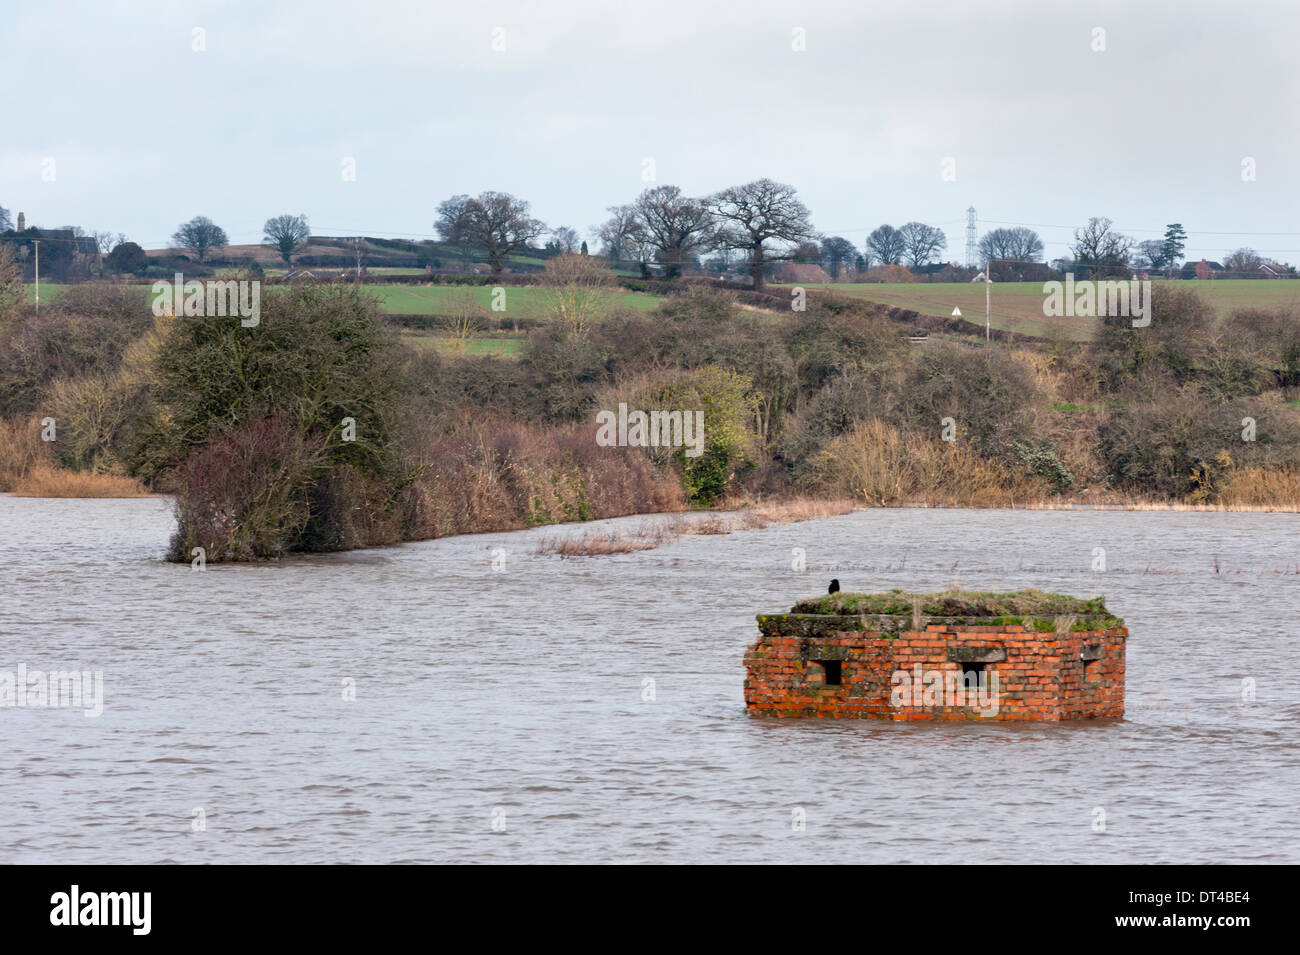 Shropshire, UK. 8th February 2014. A wartime pillbox and fields flooded by the River Severn at Cressage, near Shrewsbury, Shropshire, UK Credit:  John Bentley/Alamy Live News - Stock Image